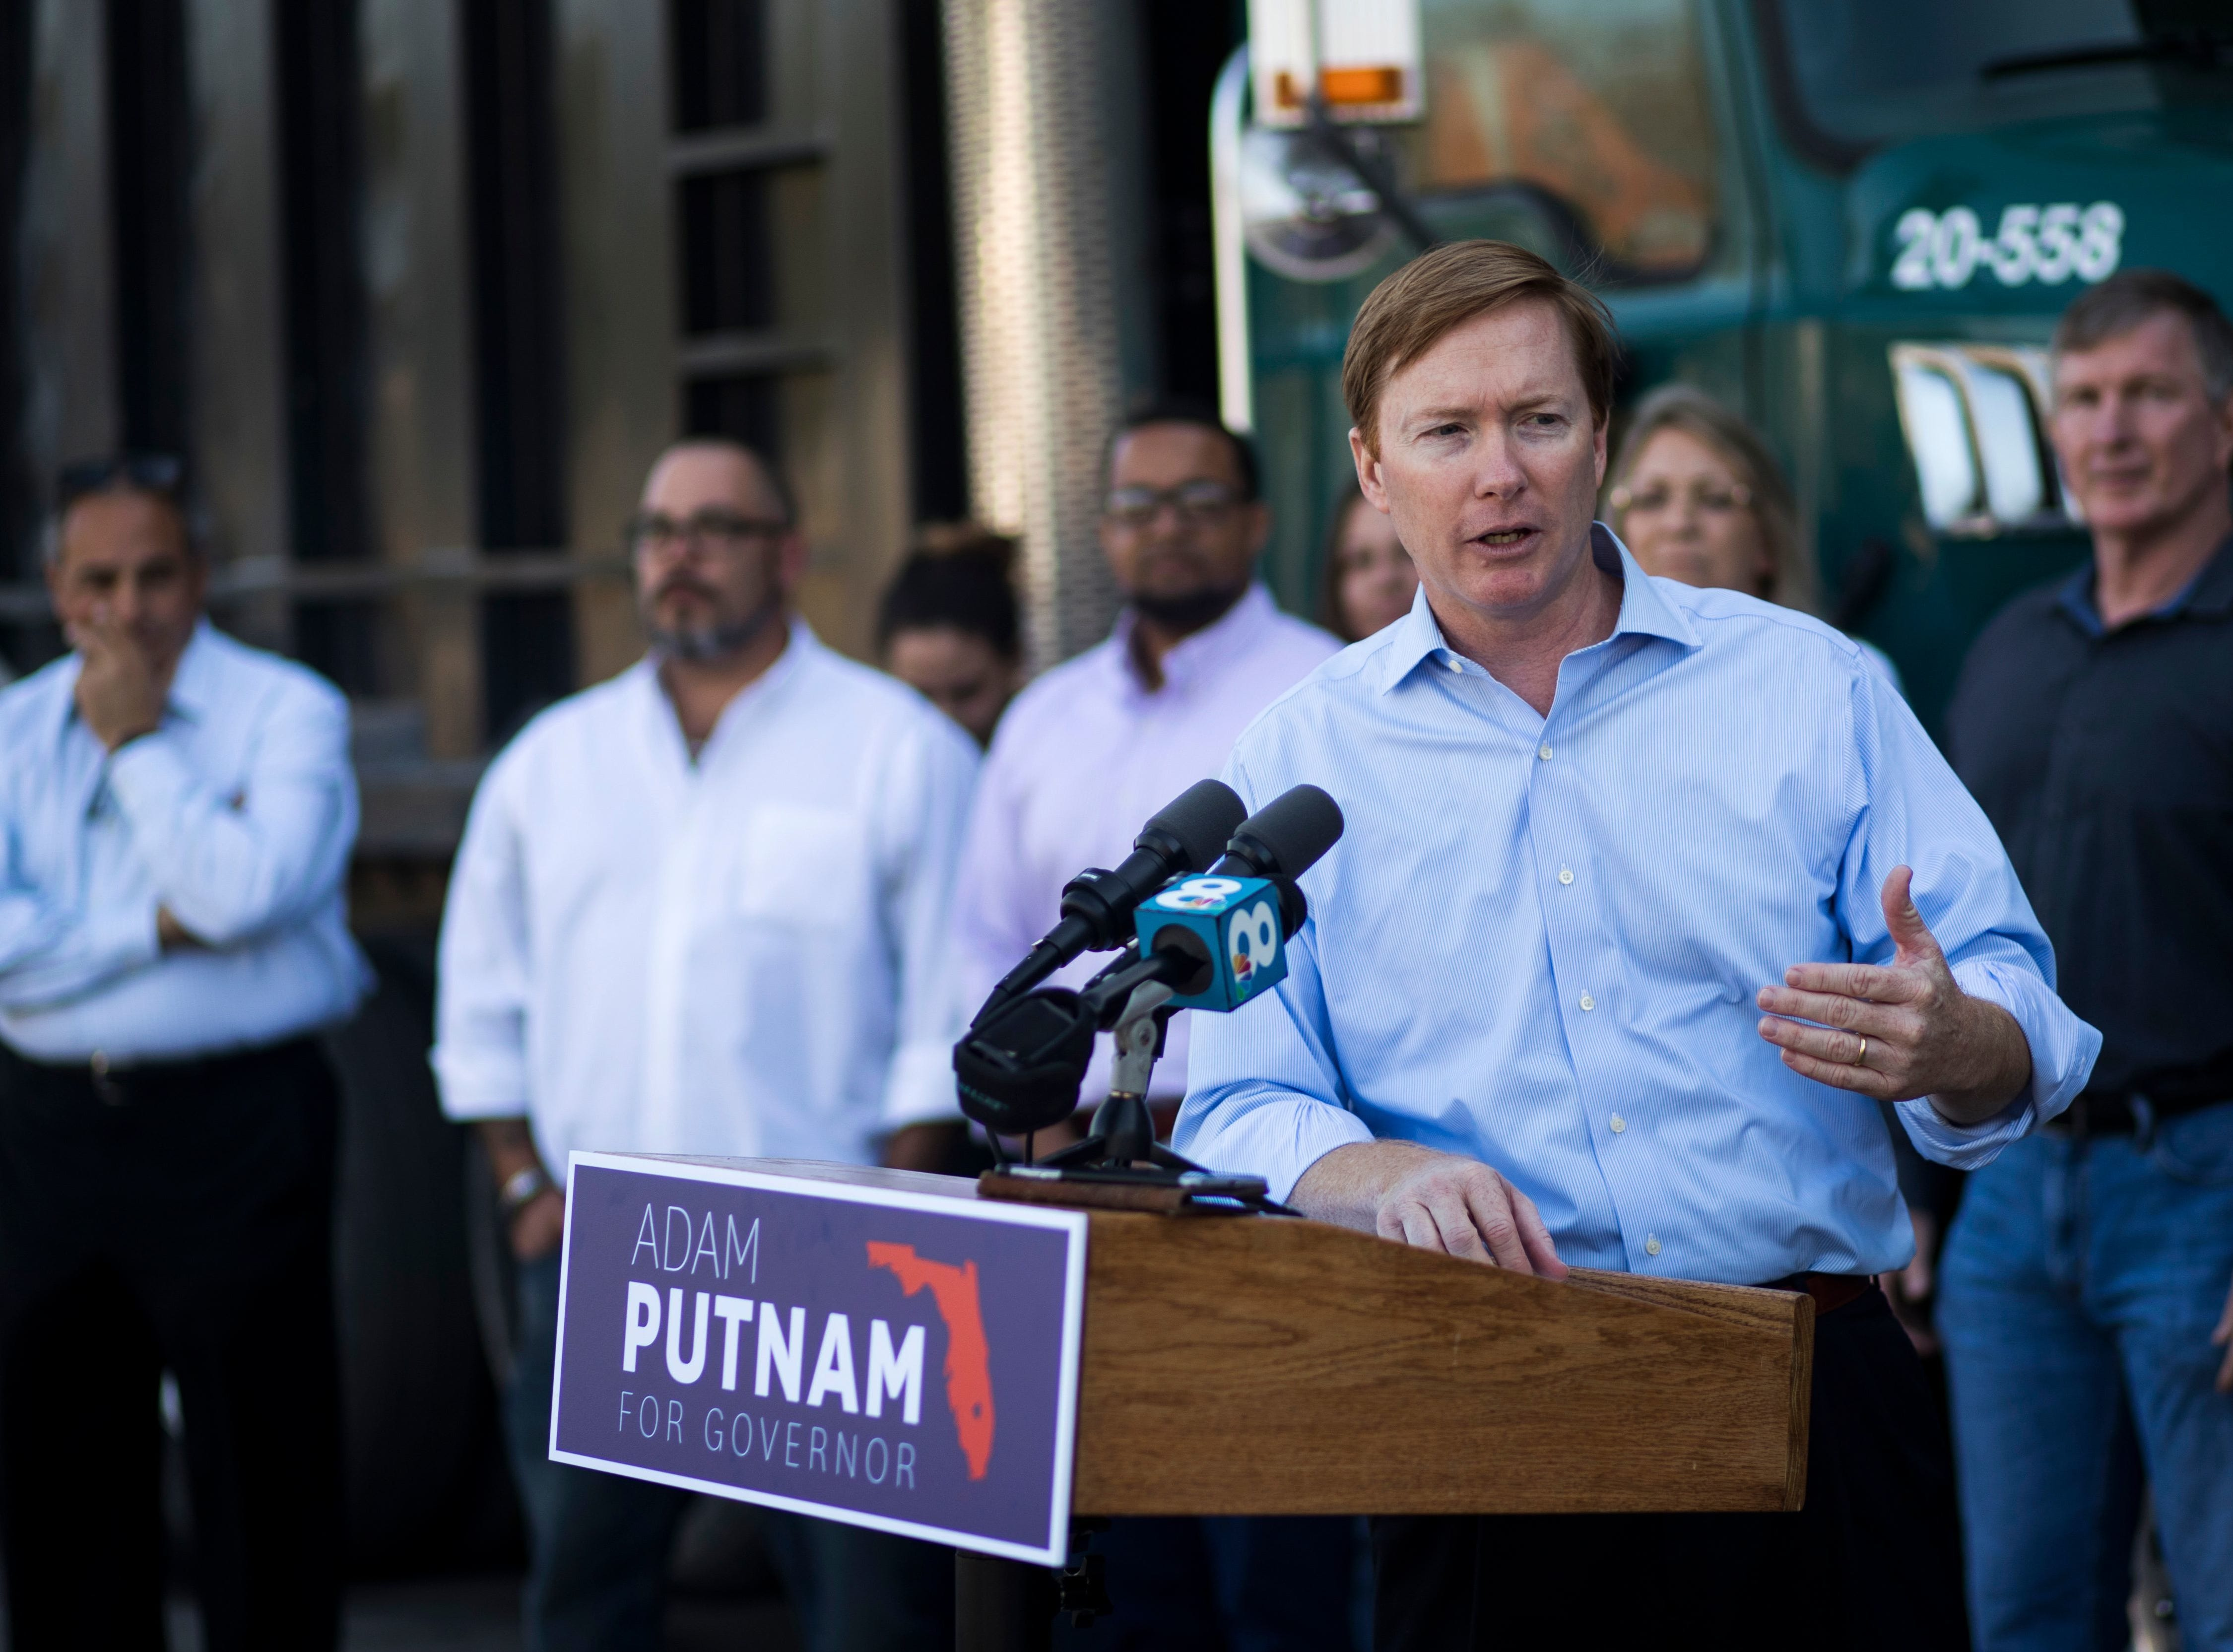 April 6, 2018 - Adam Putnam, Republican gubernatorial candidate, makes a campaign stop at Kimmins Contracting in Tampa.